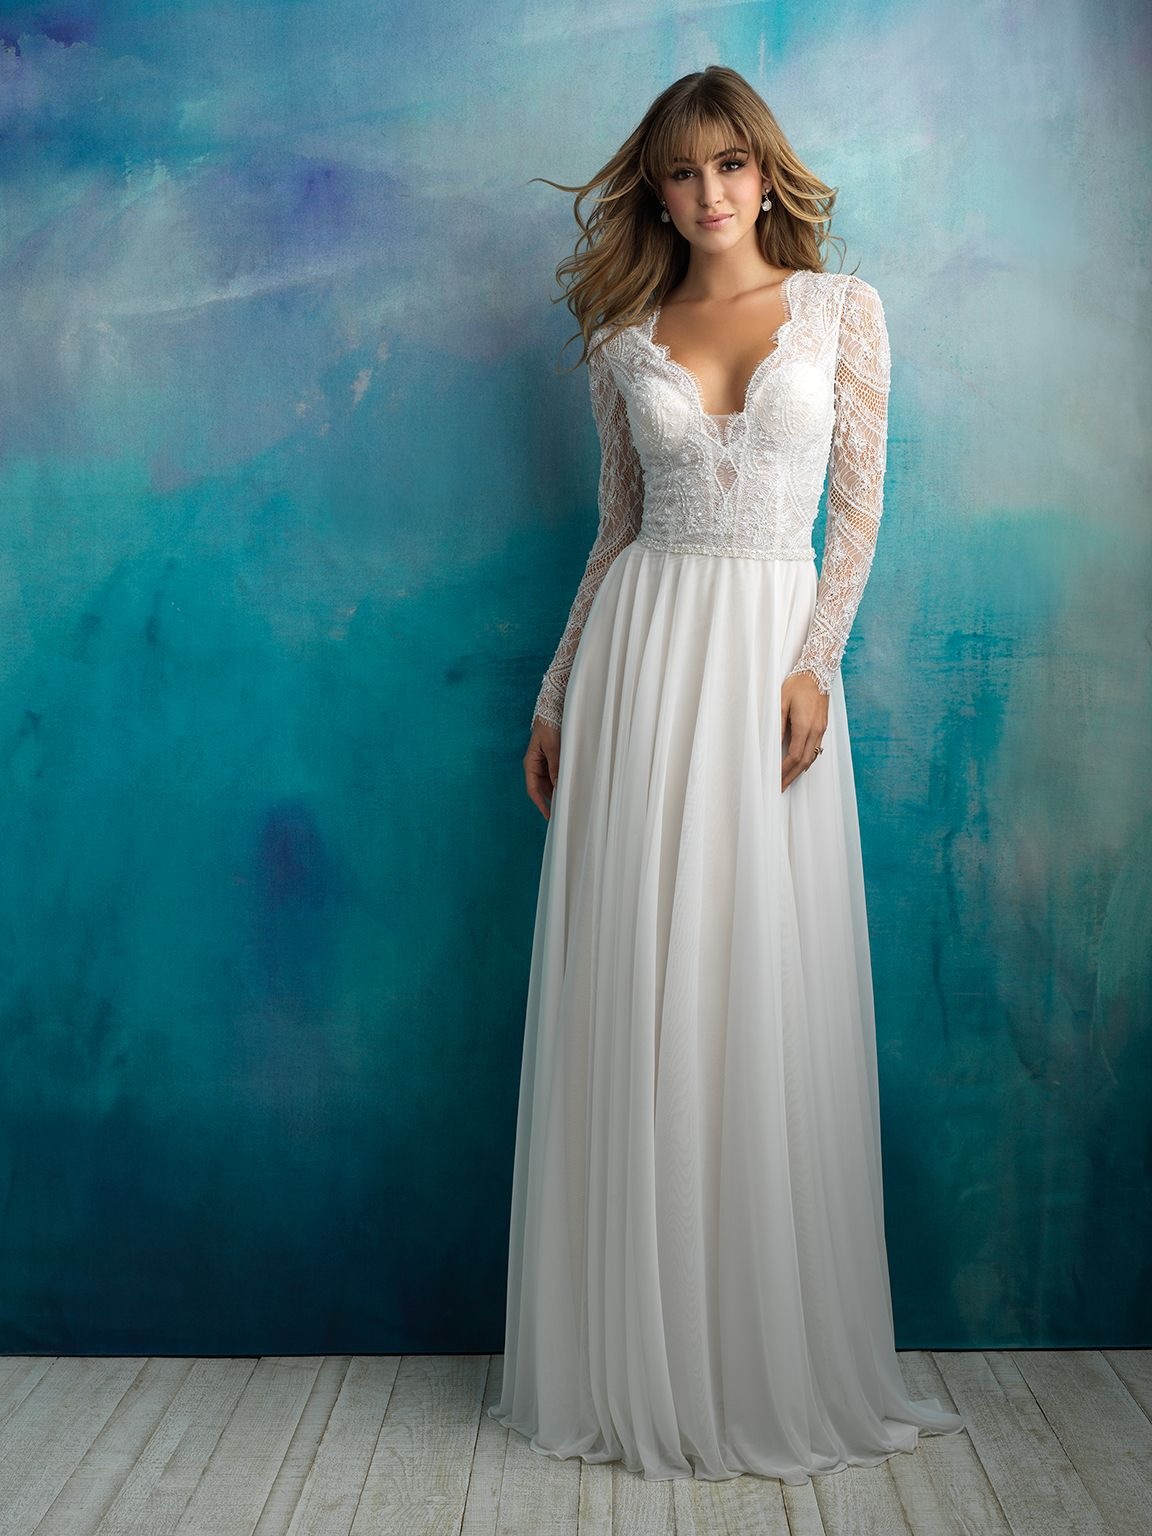 TRUNK SHOW GOWN// Allure Bridal. Style #9515 - Sample size 12 ...